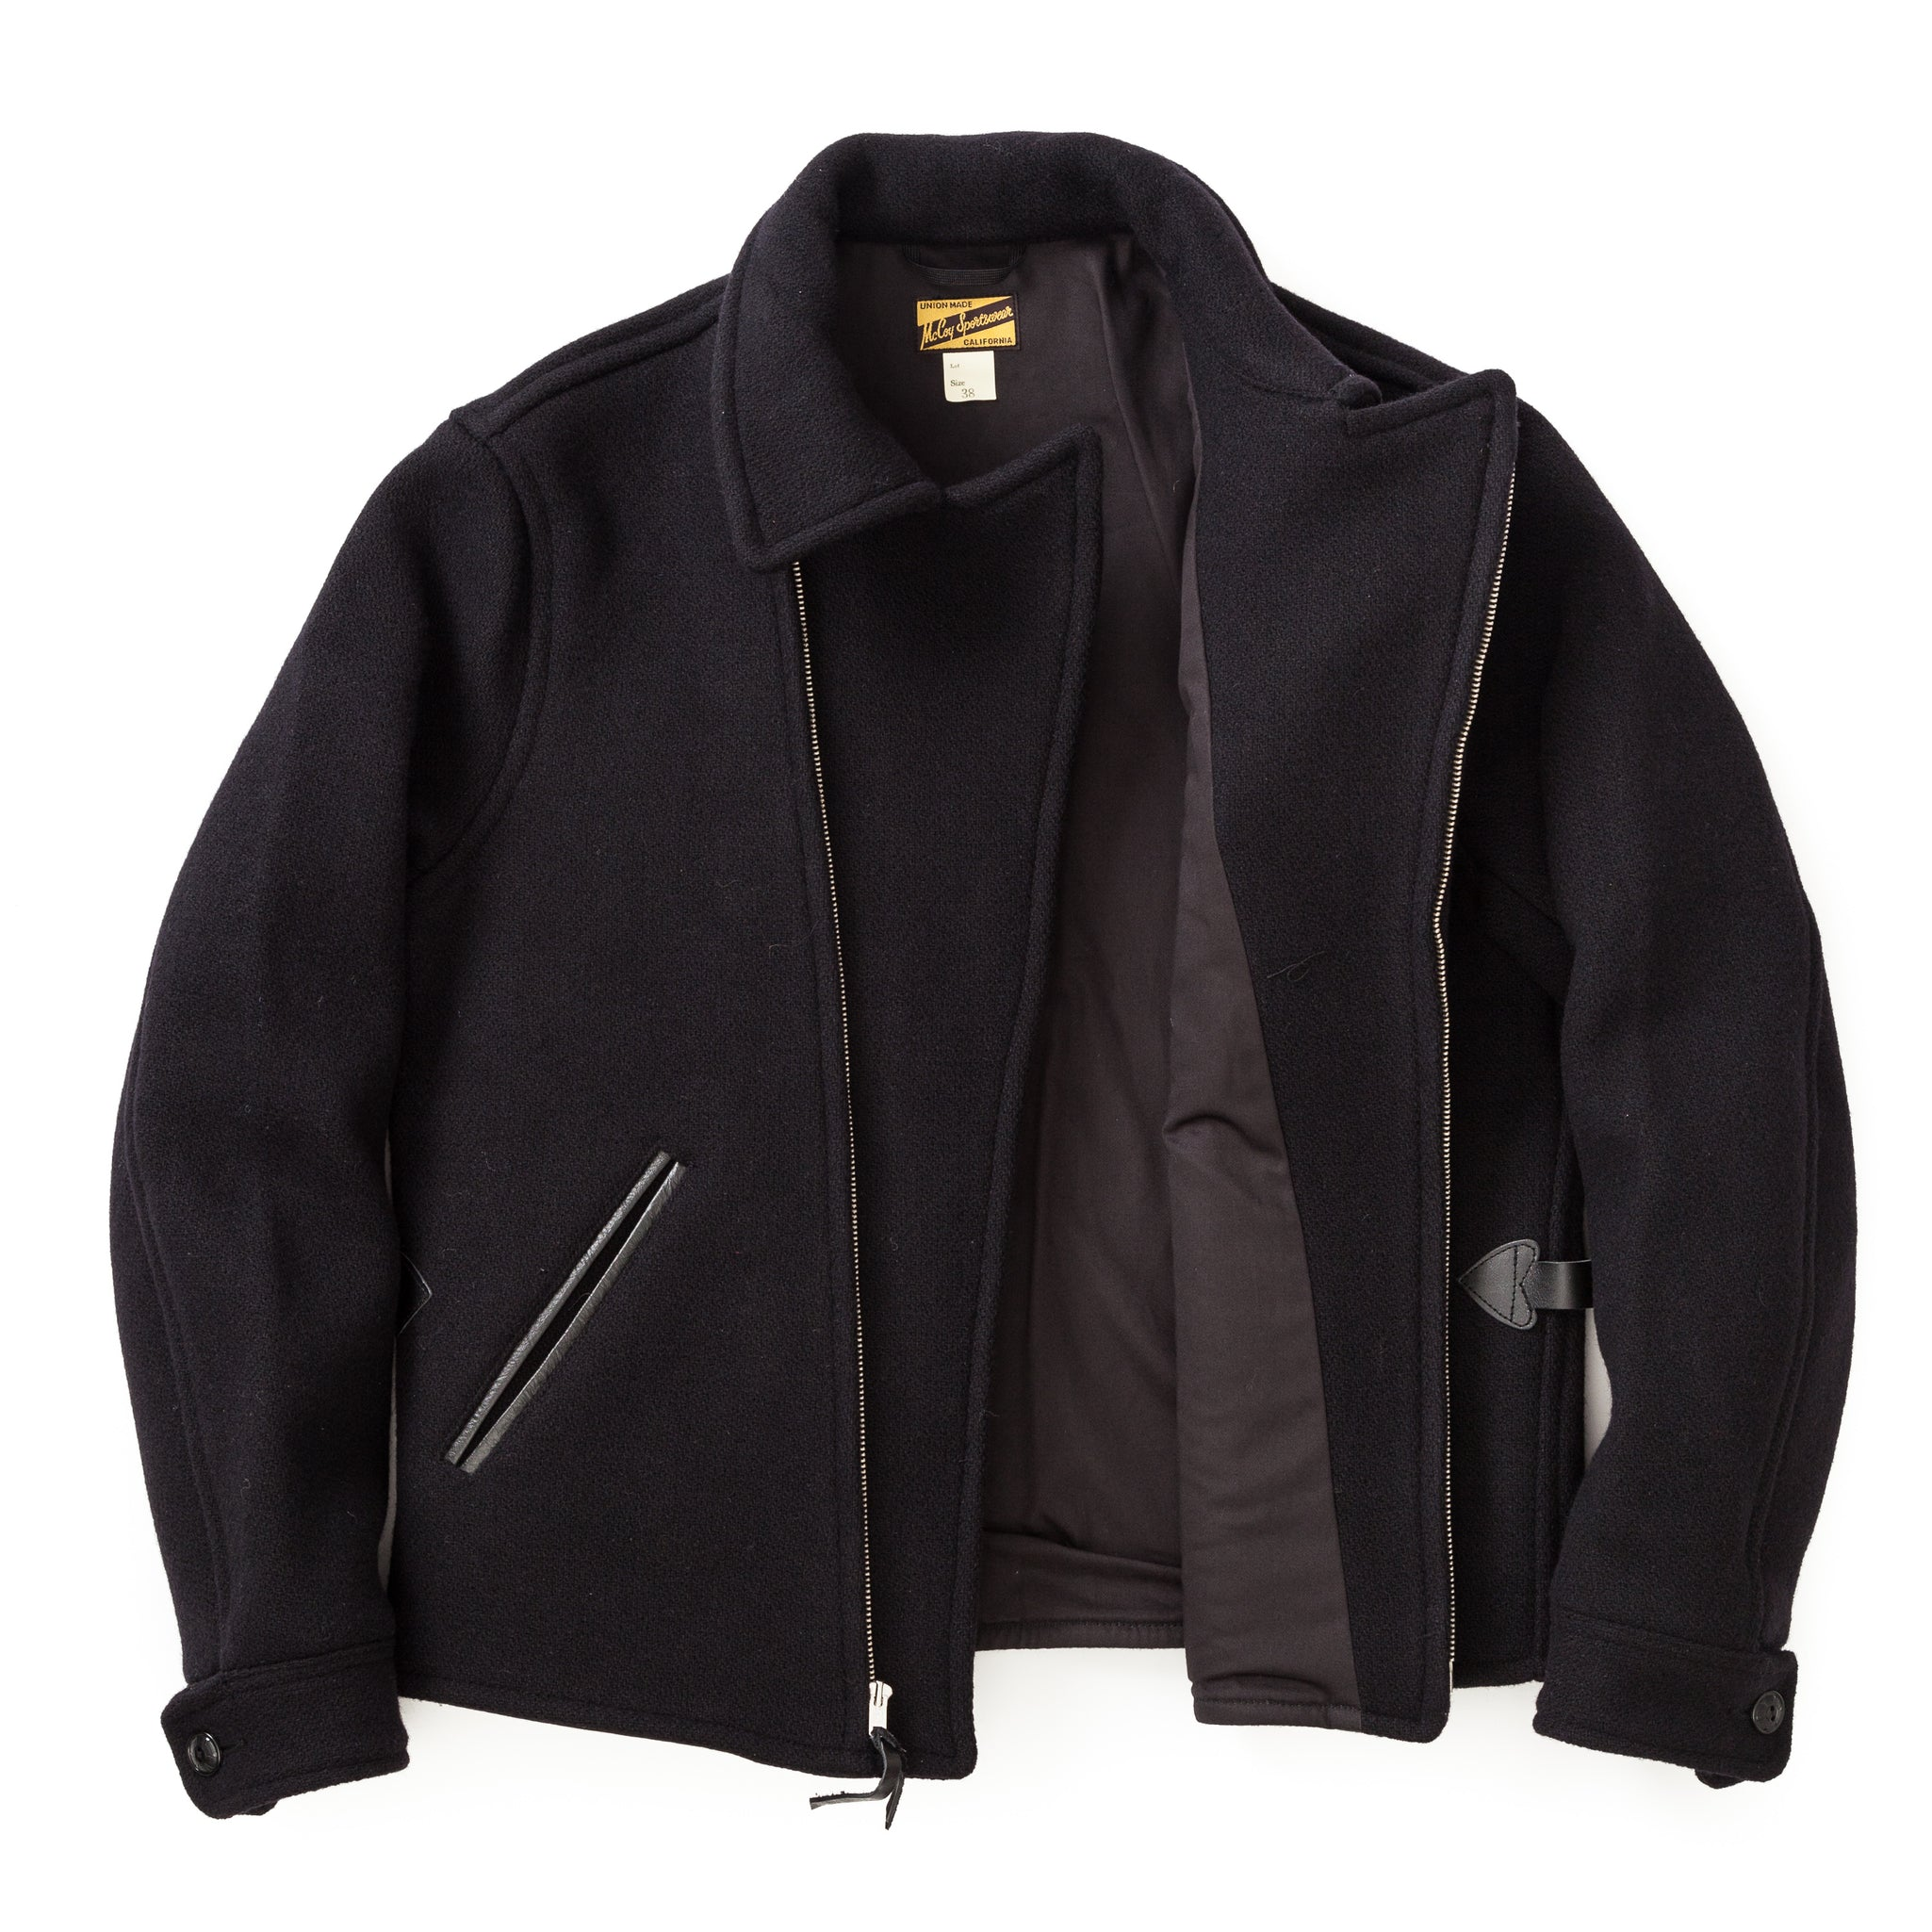 Double Breasted Wool Sports Jacket